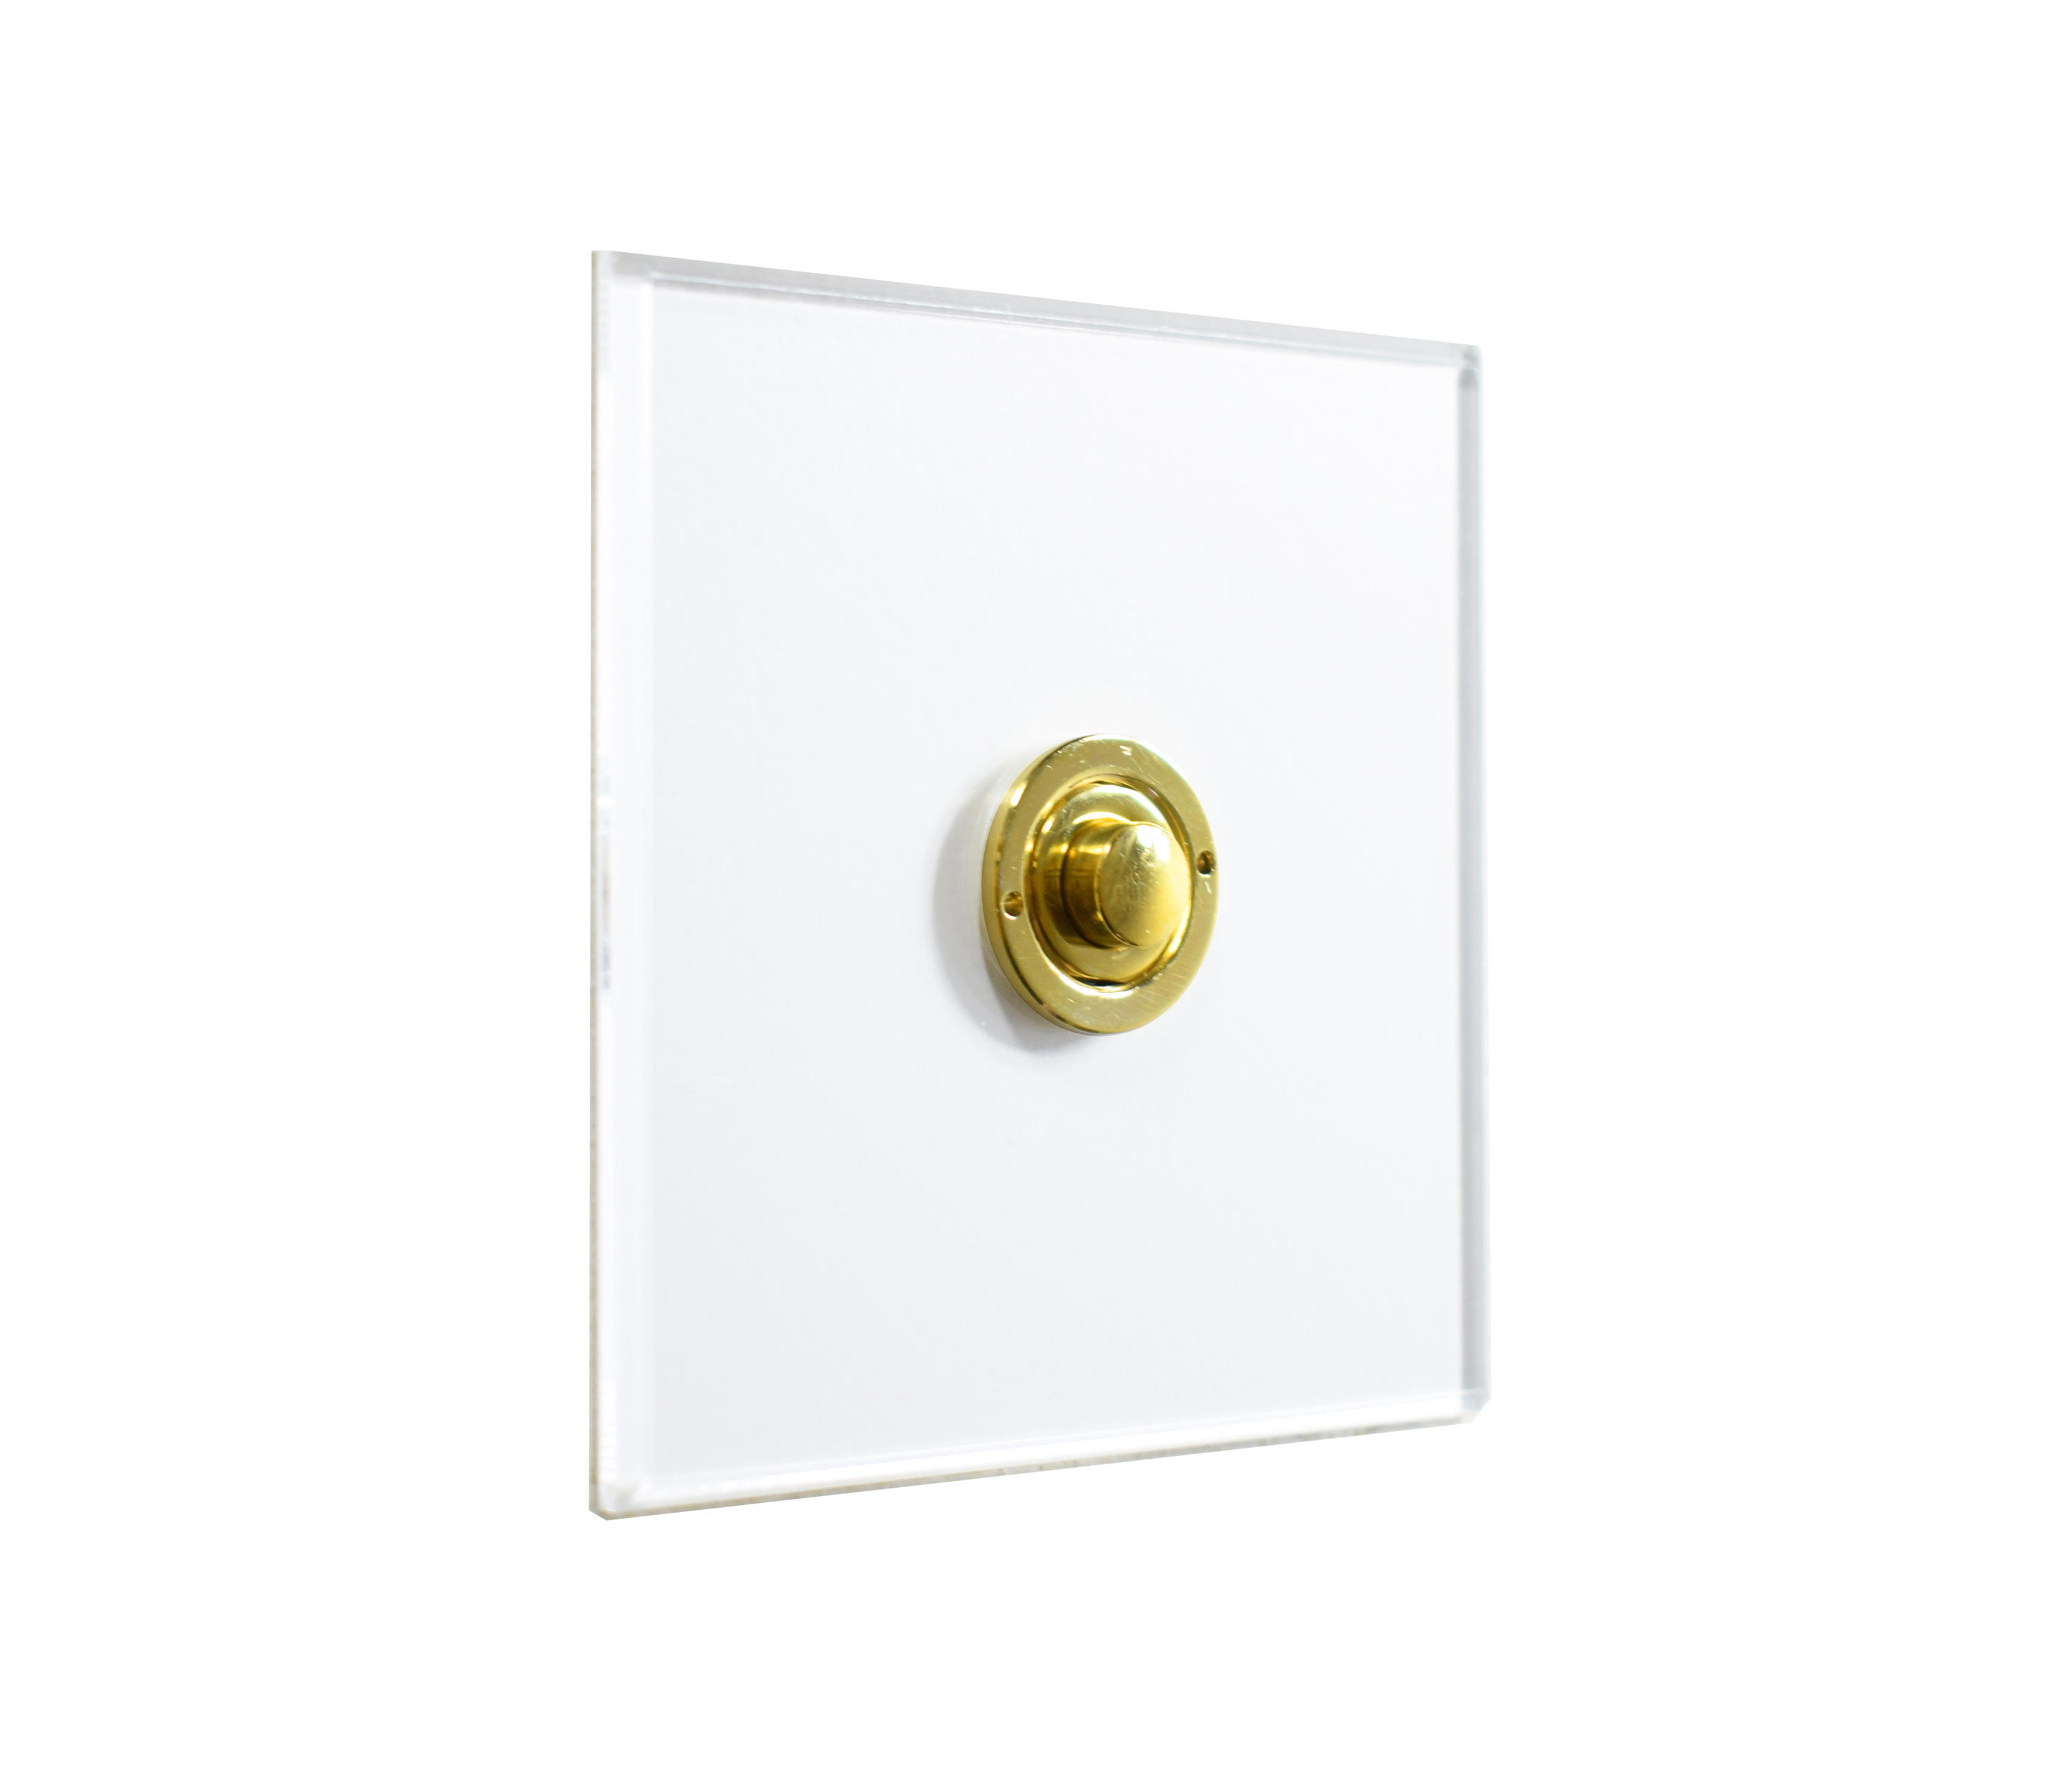 invisible lightswitch u00ae with unlacquered brass button